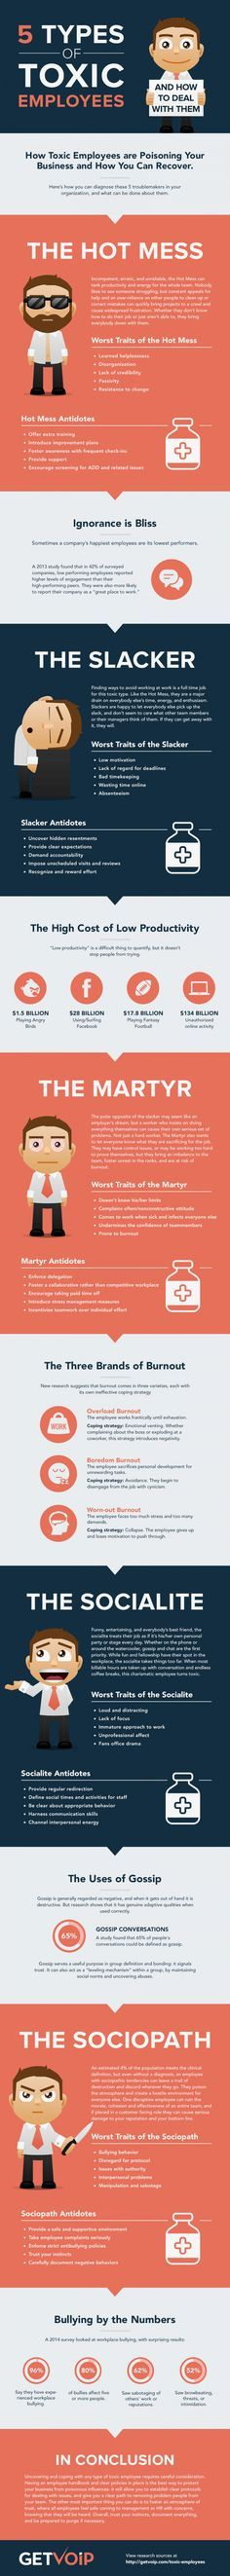 5 Types of Toxic Employees (And How To Deal With Them) [Infographic